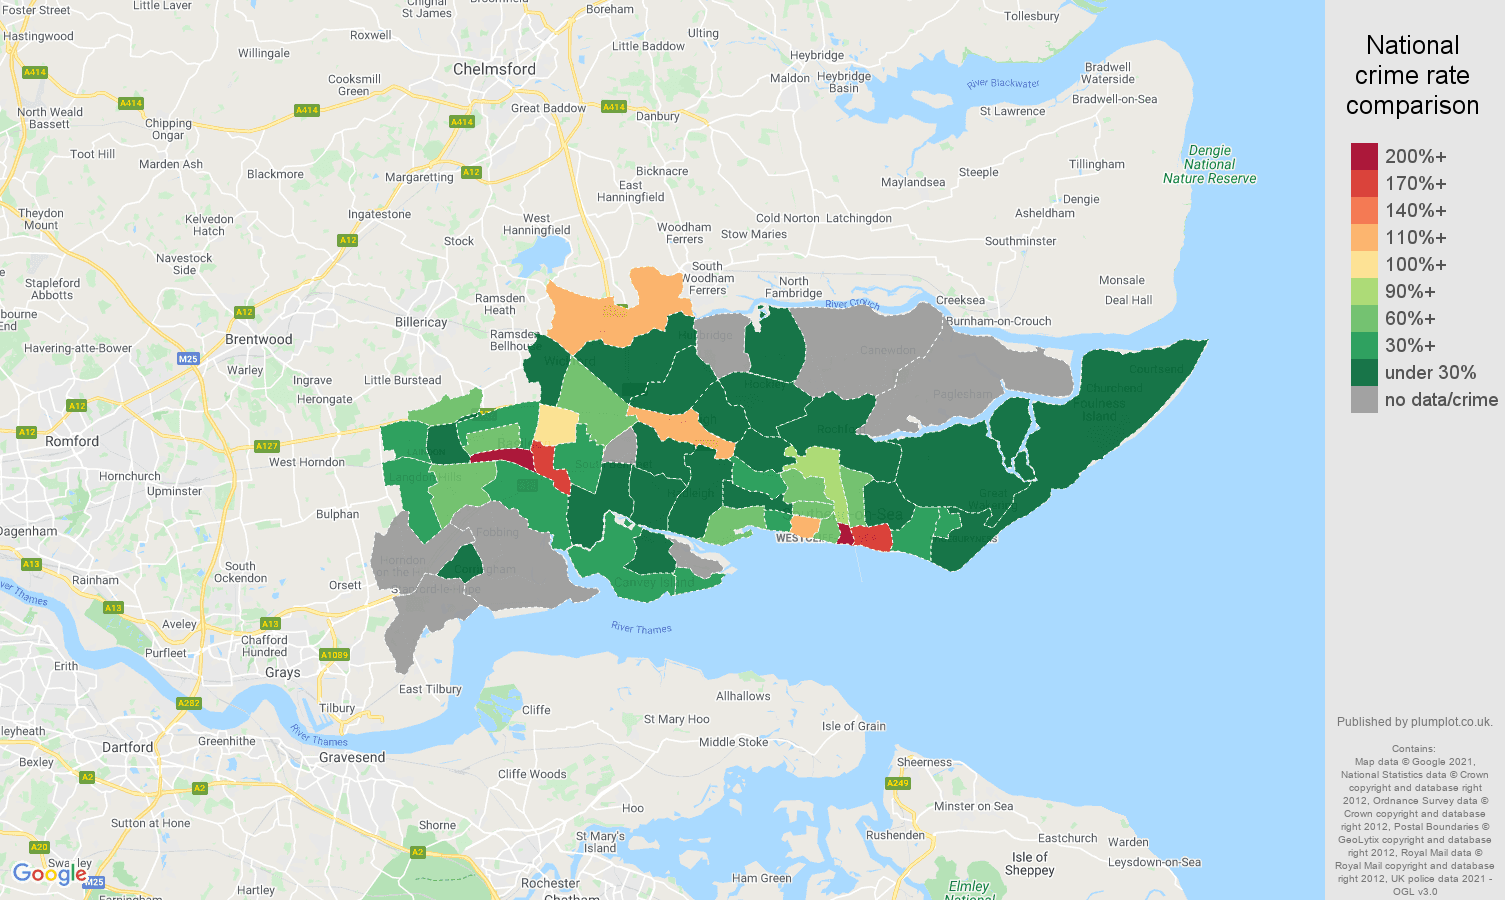 Southend on Sea theft from the person crime rate comparison map